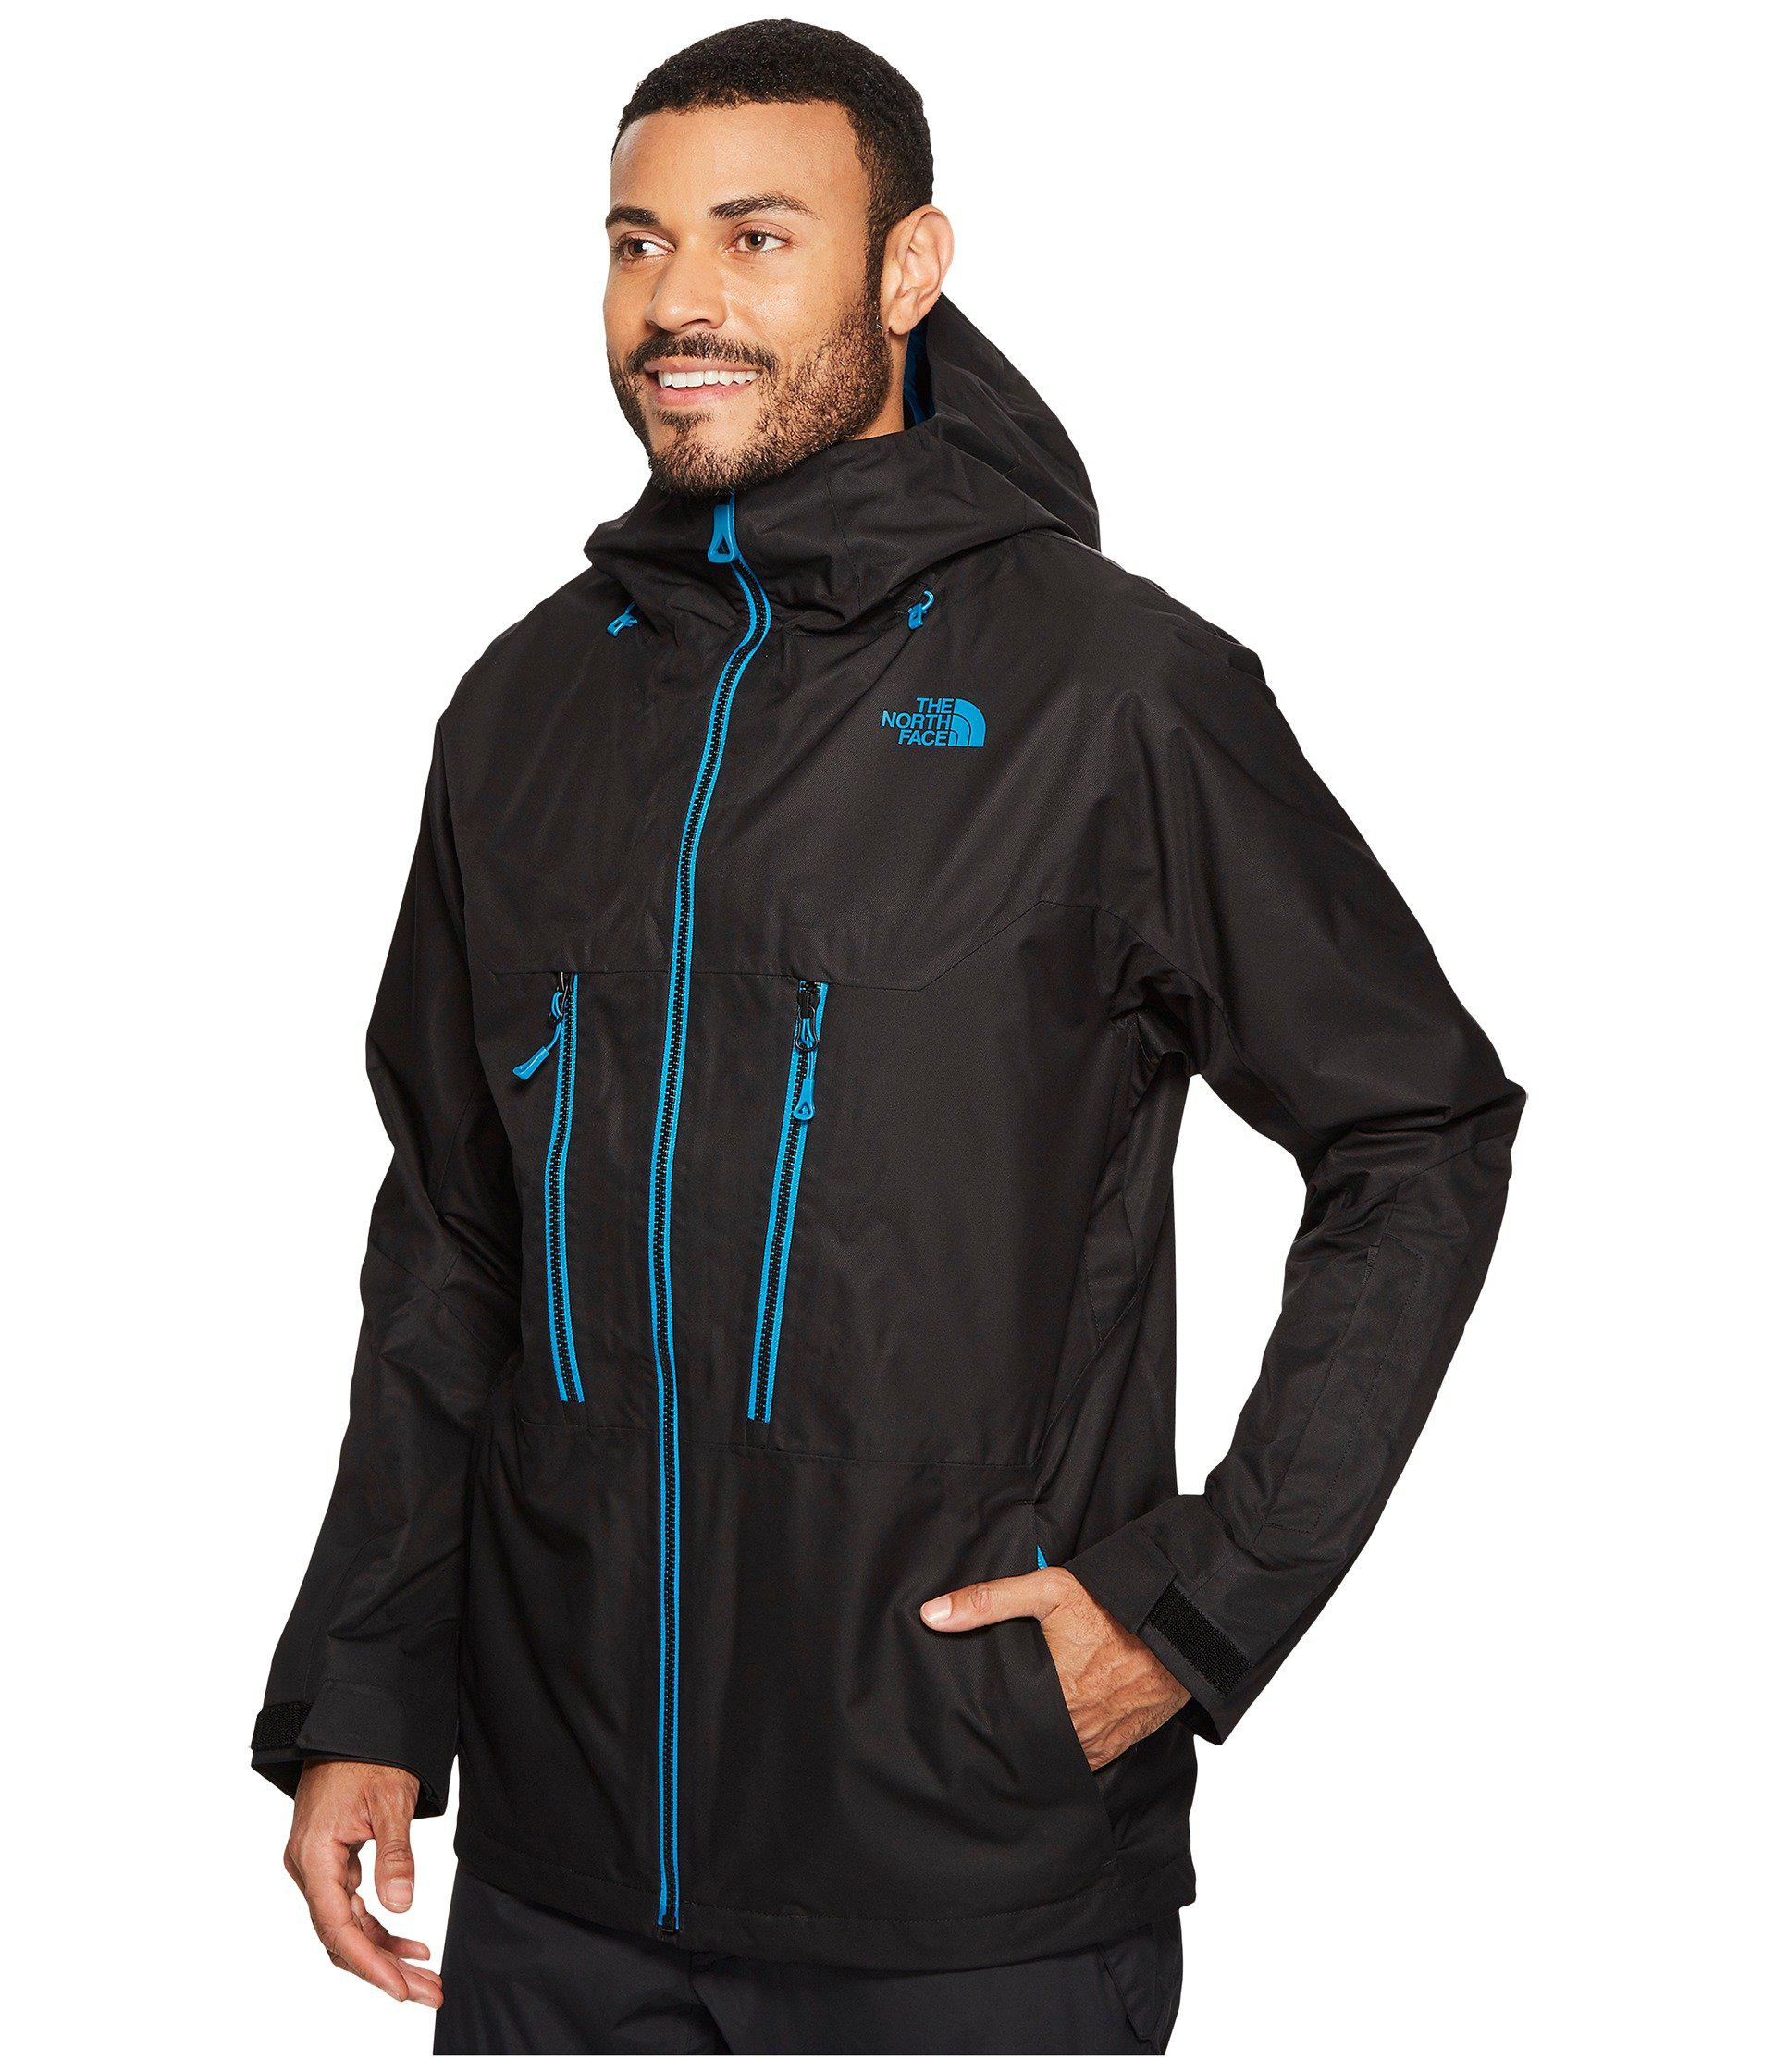 d1ac091ba The North Face Black Thermoball Snow Triclimate Jacket for men